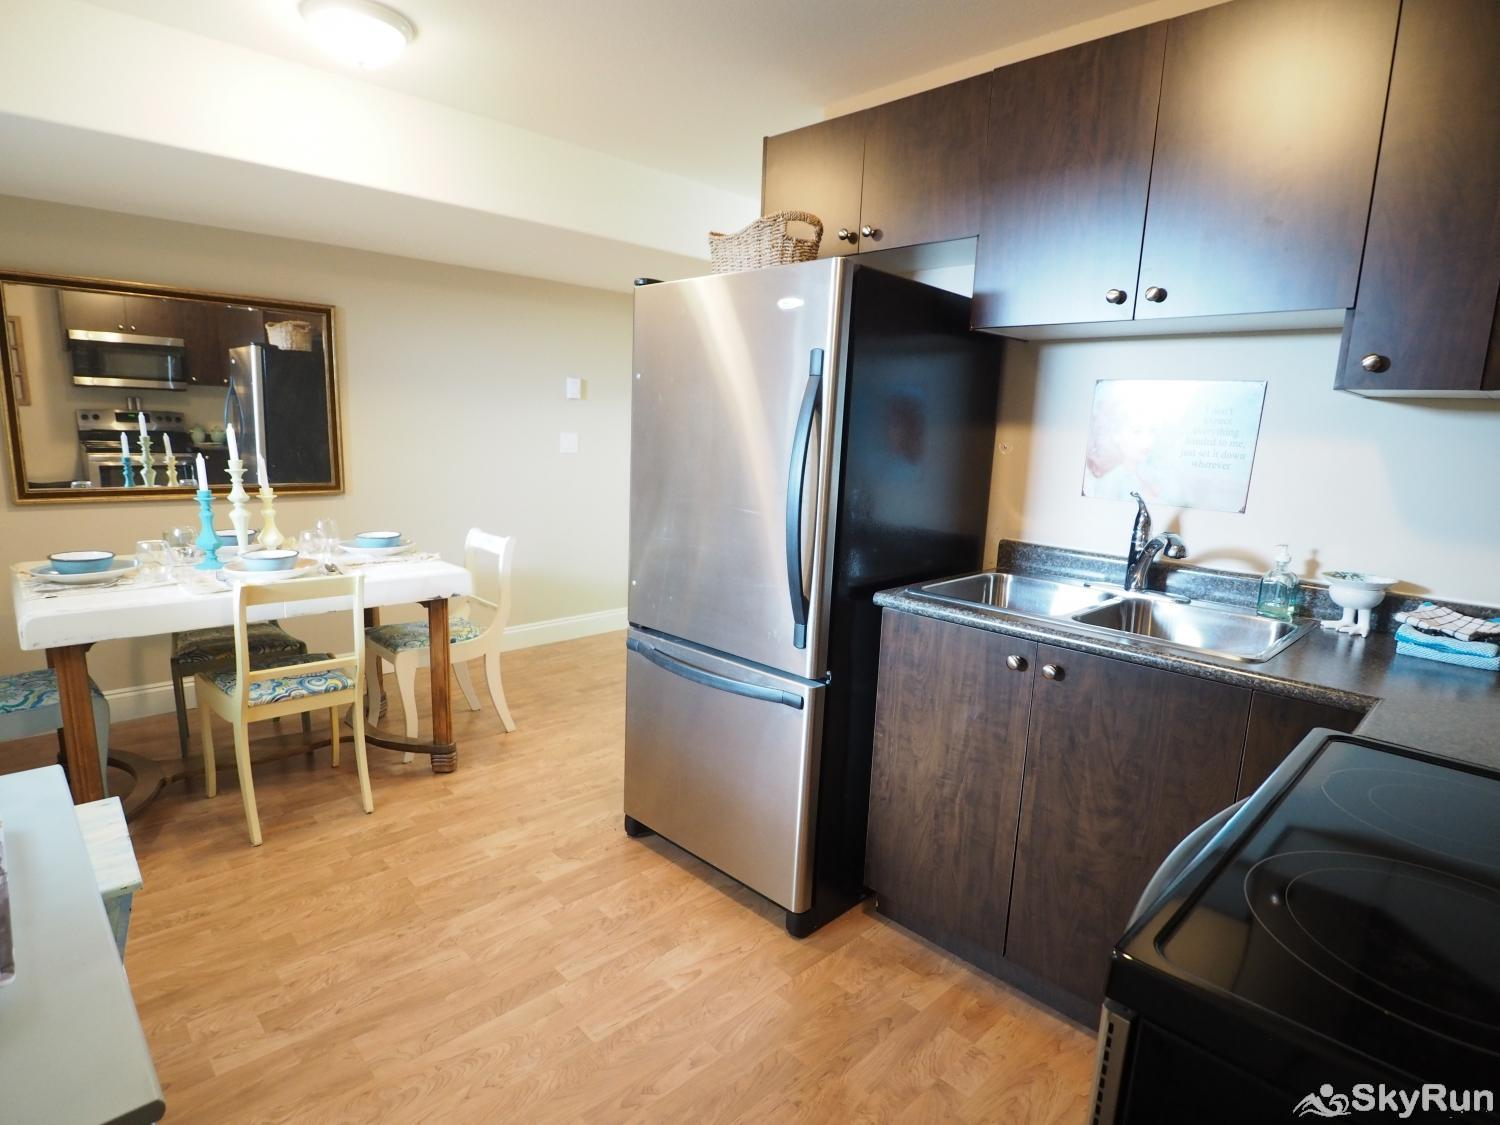 Old Summerland 4 bedroom townhouse Basement suite kitchen and living room